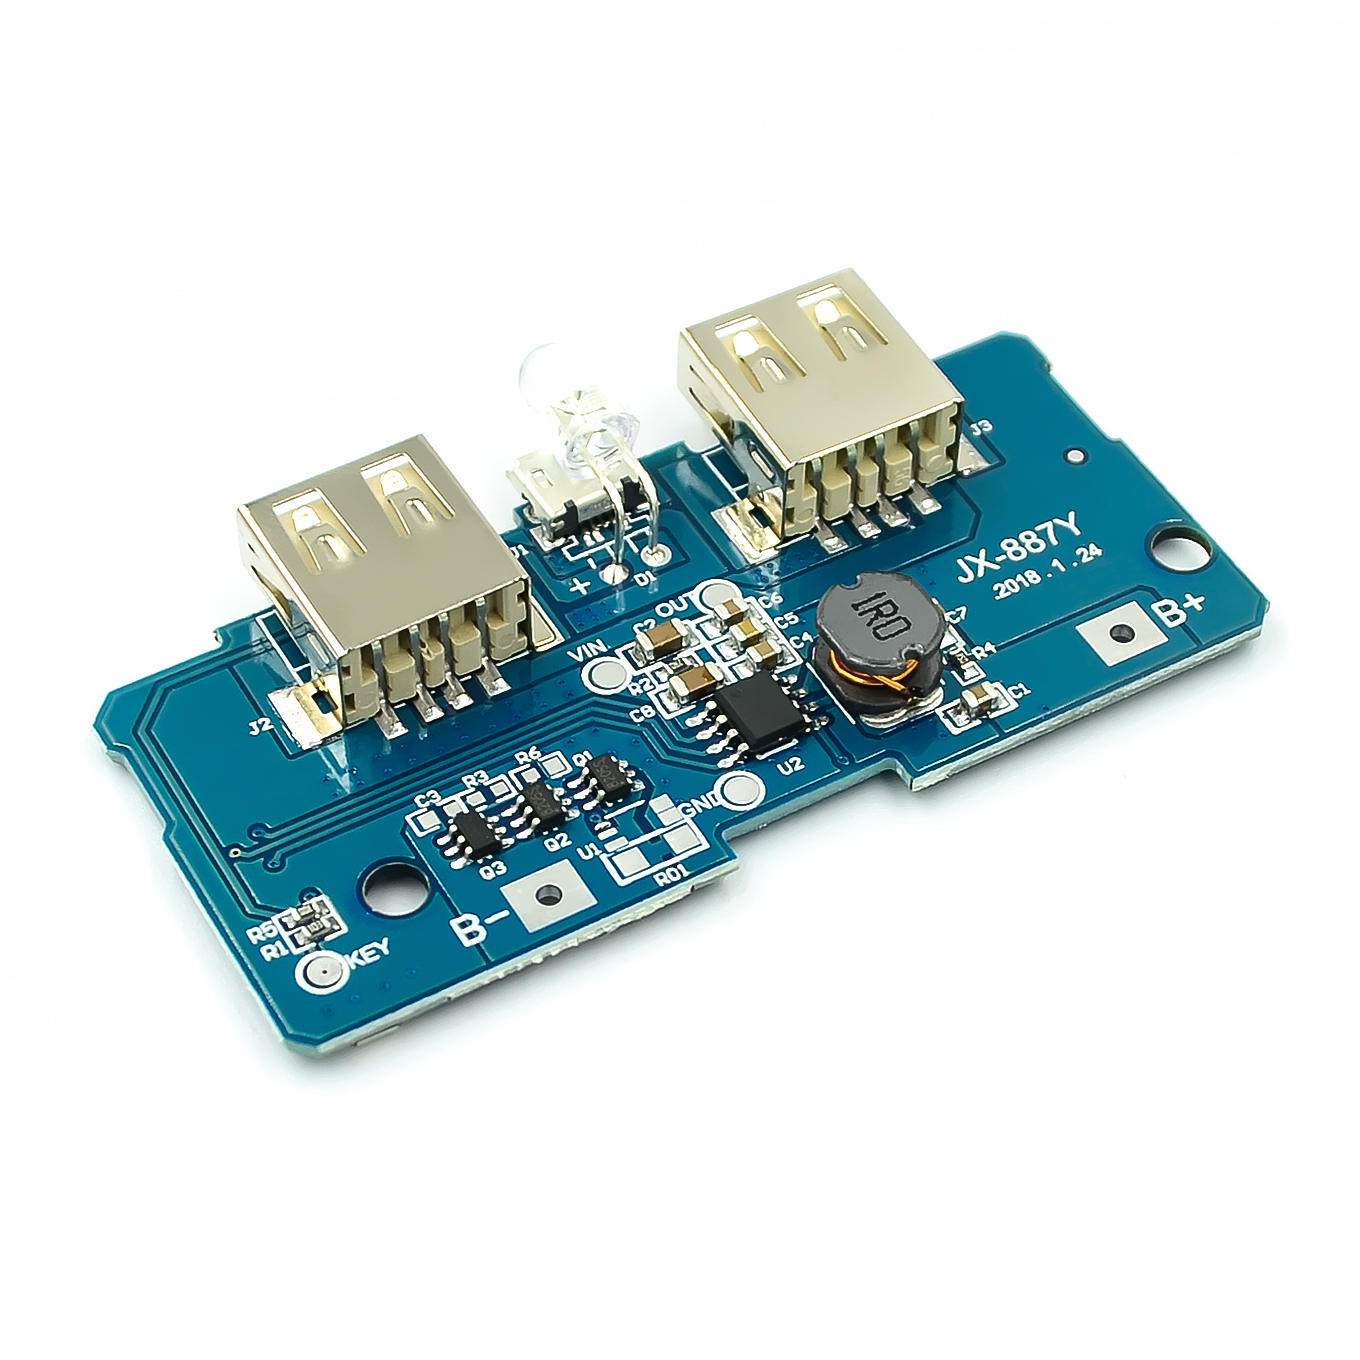 5V 2A Power Bank Charger Module Charging Circuit Board Step Up Boost Power Supply Module 2A Dual USB Output 1A Input